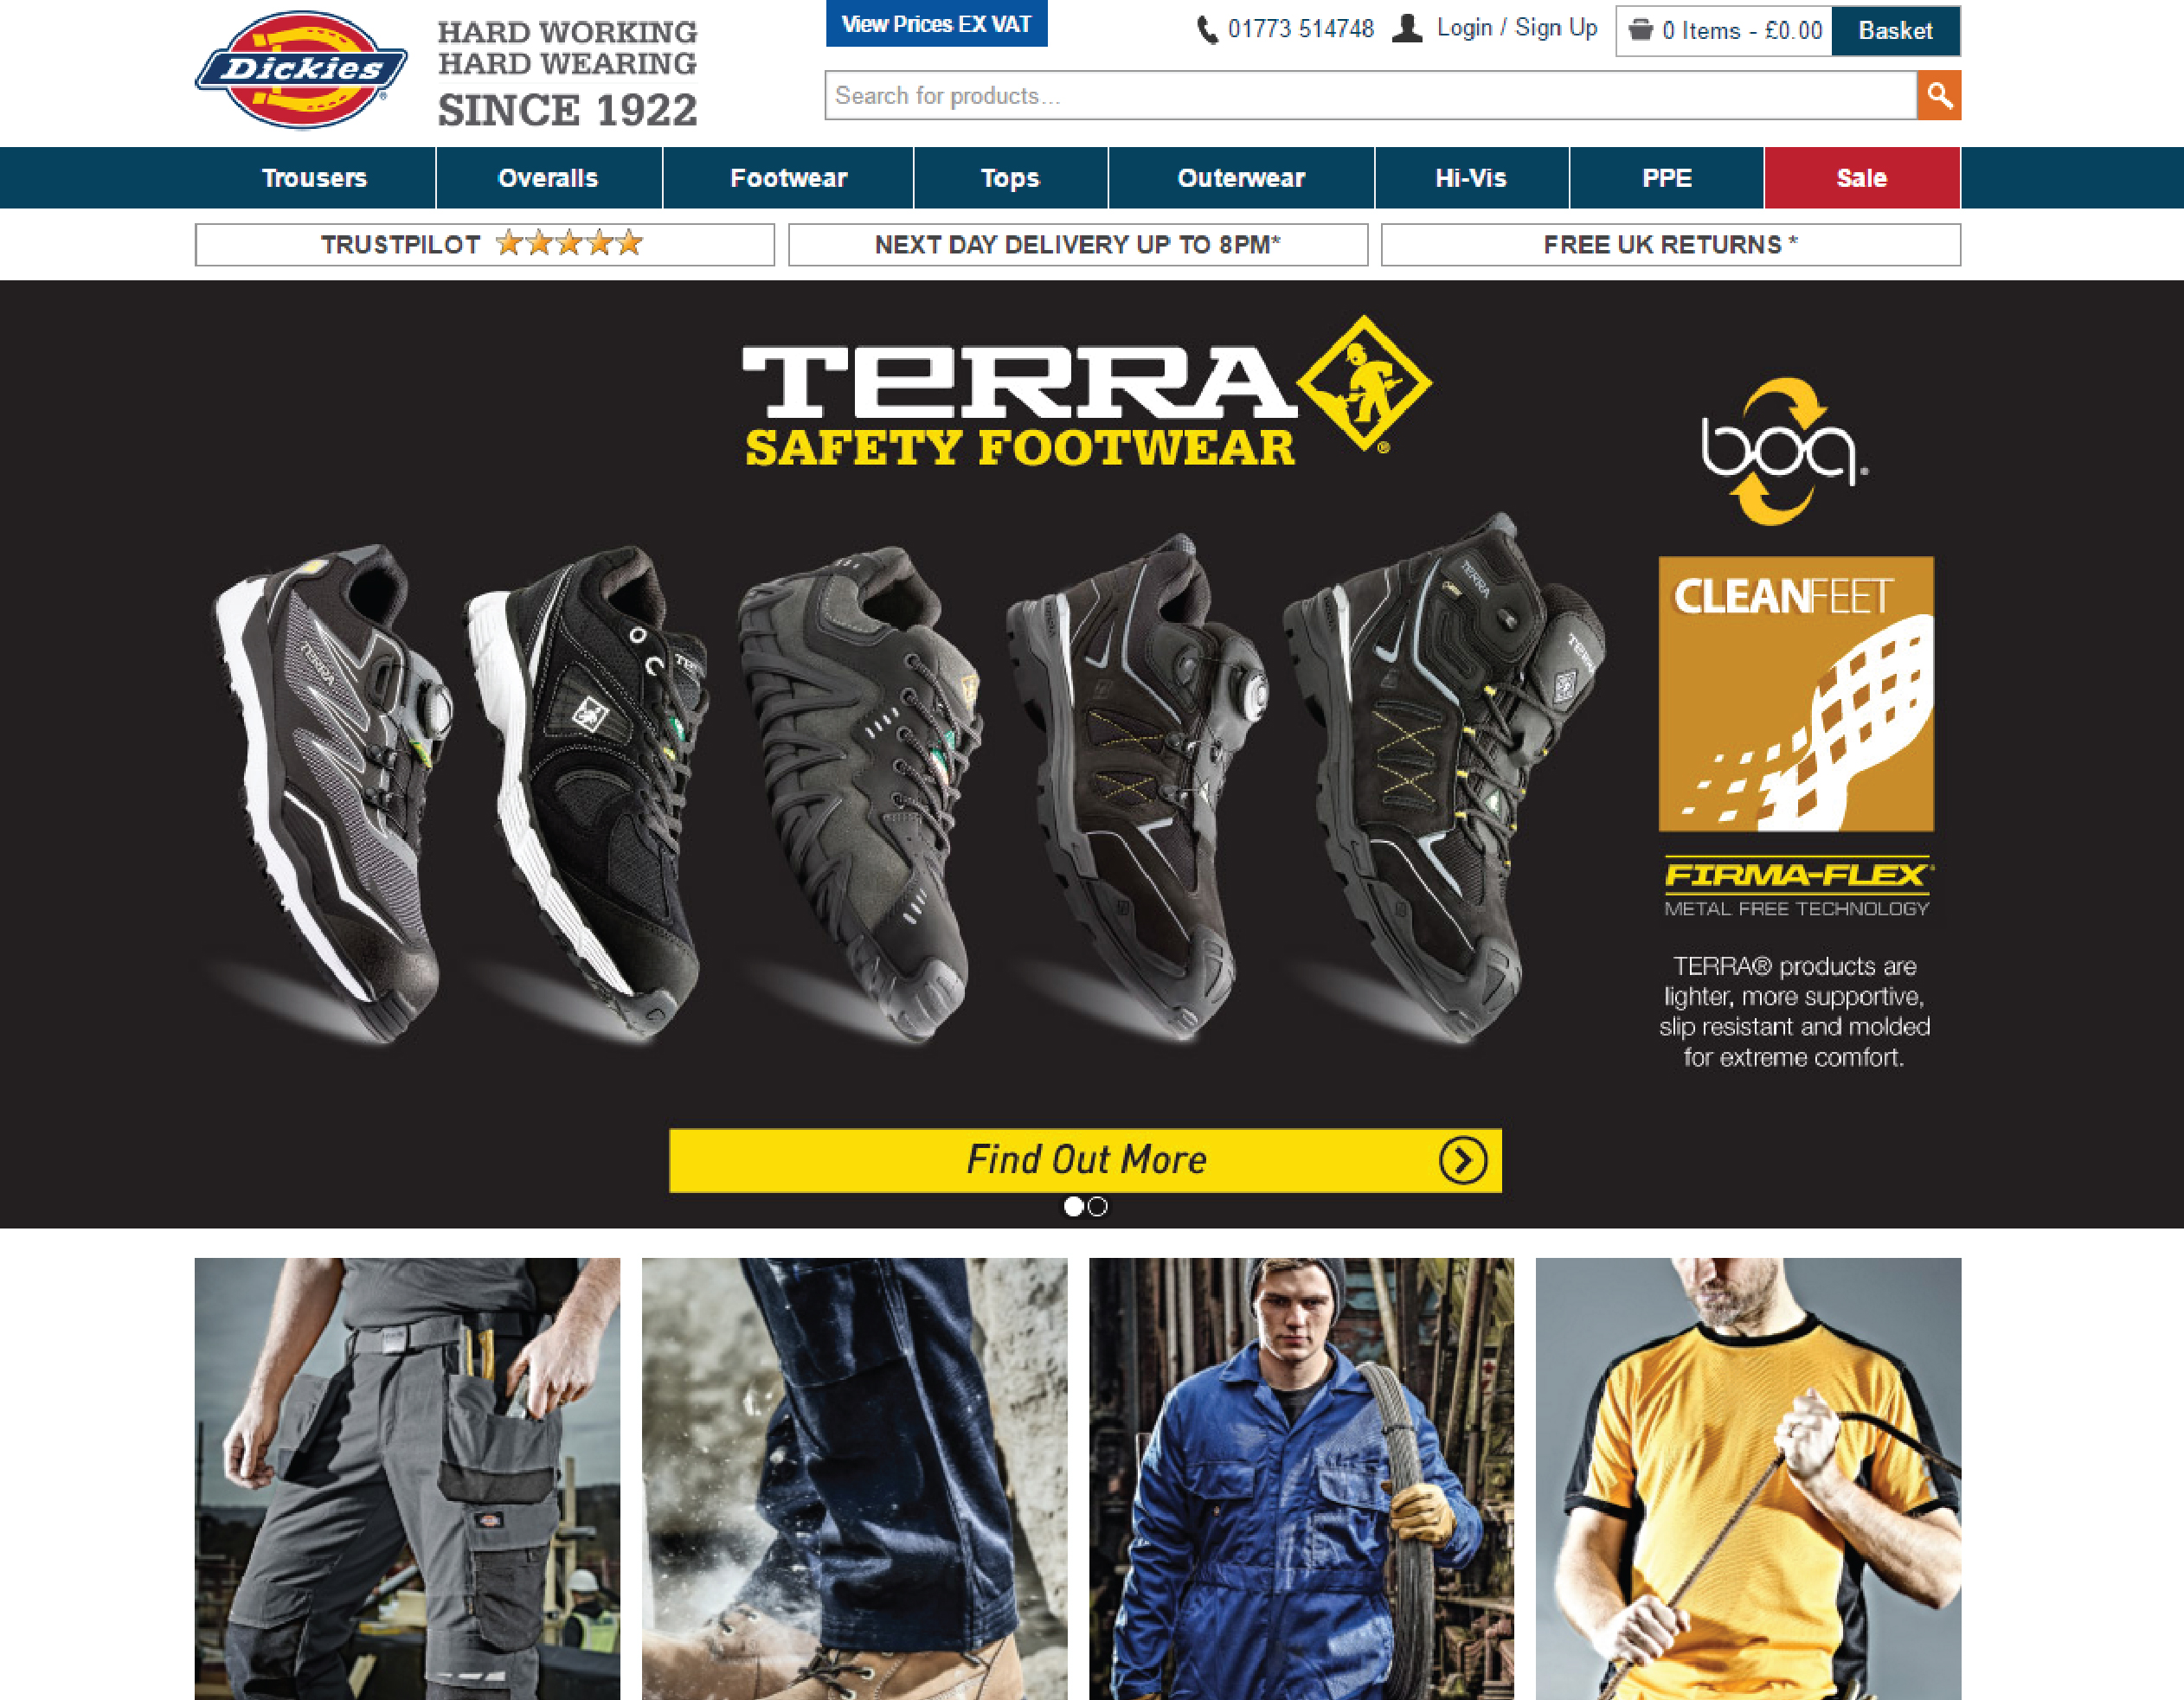 Terra Safety Footwear